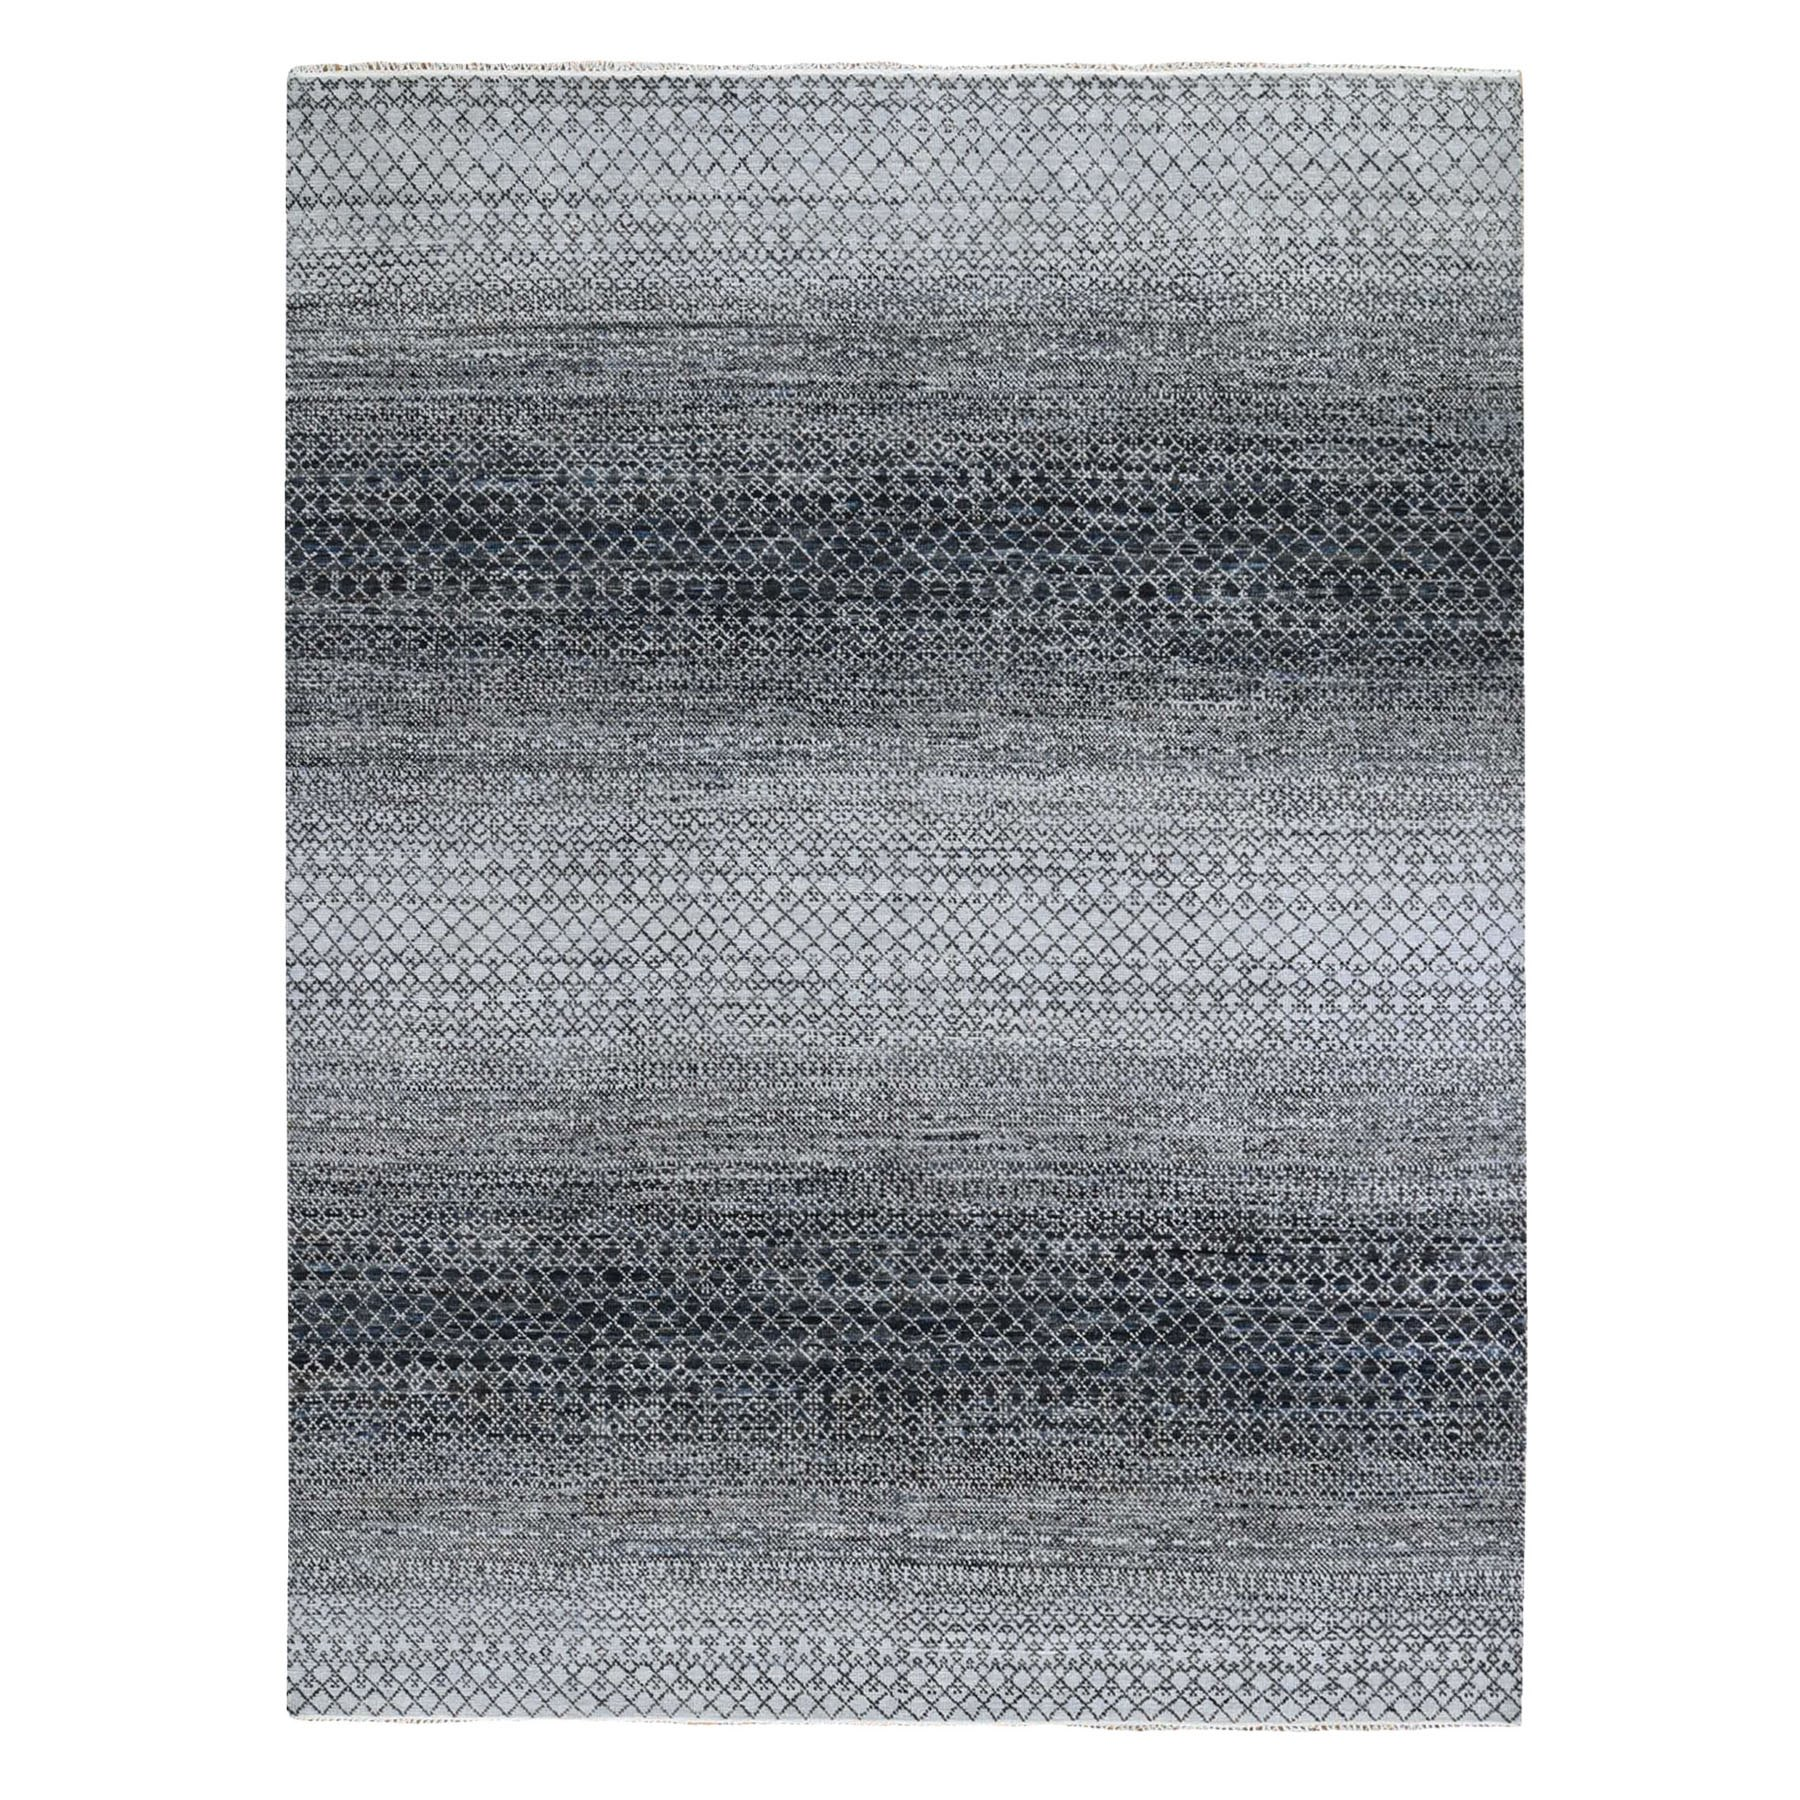 "8'x10'1"" Black-Light Gray Chiaroscuro Collection Hand Knotted Pure Wool Thick and Plush Modern Rug"